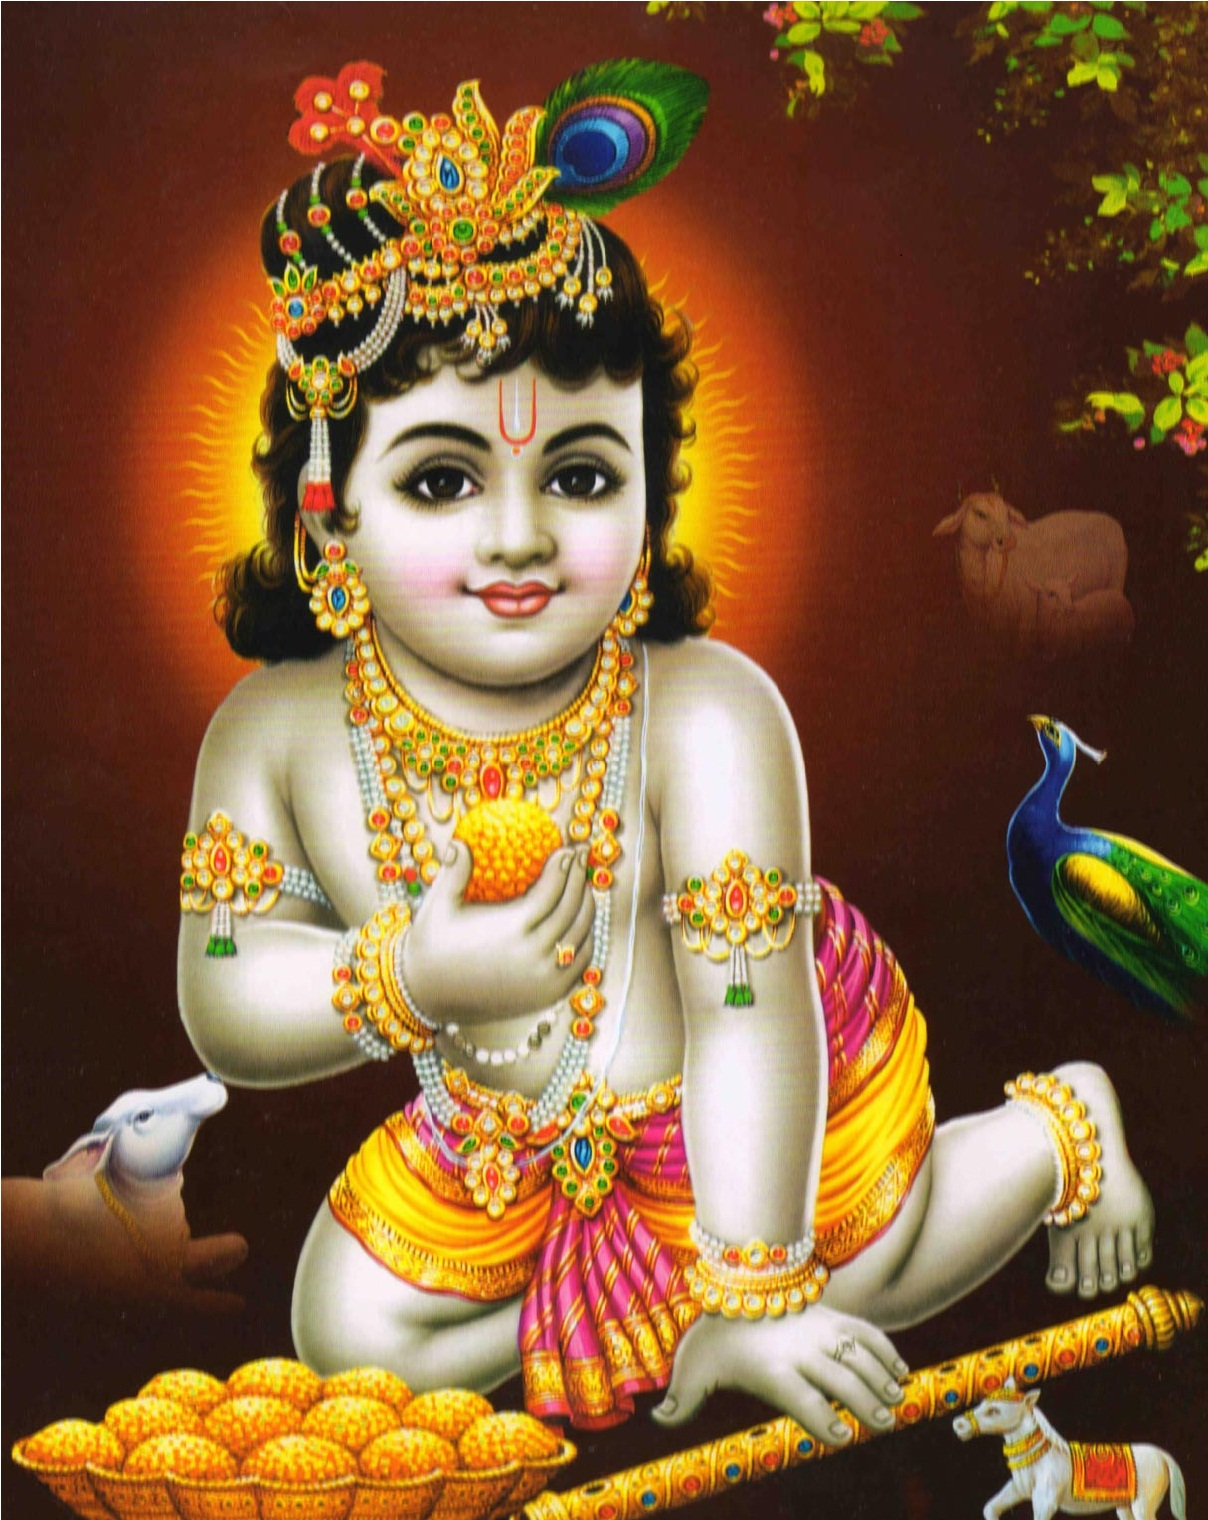 Wallpaper download krishna bhagwan - Cute Shri Krishna